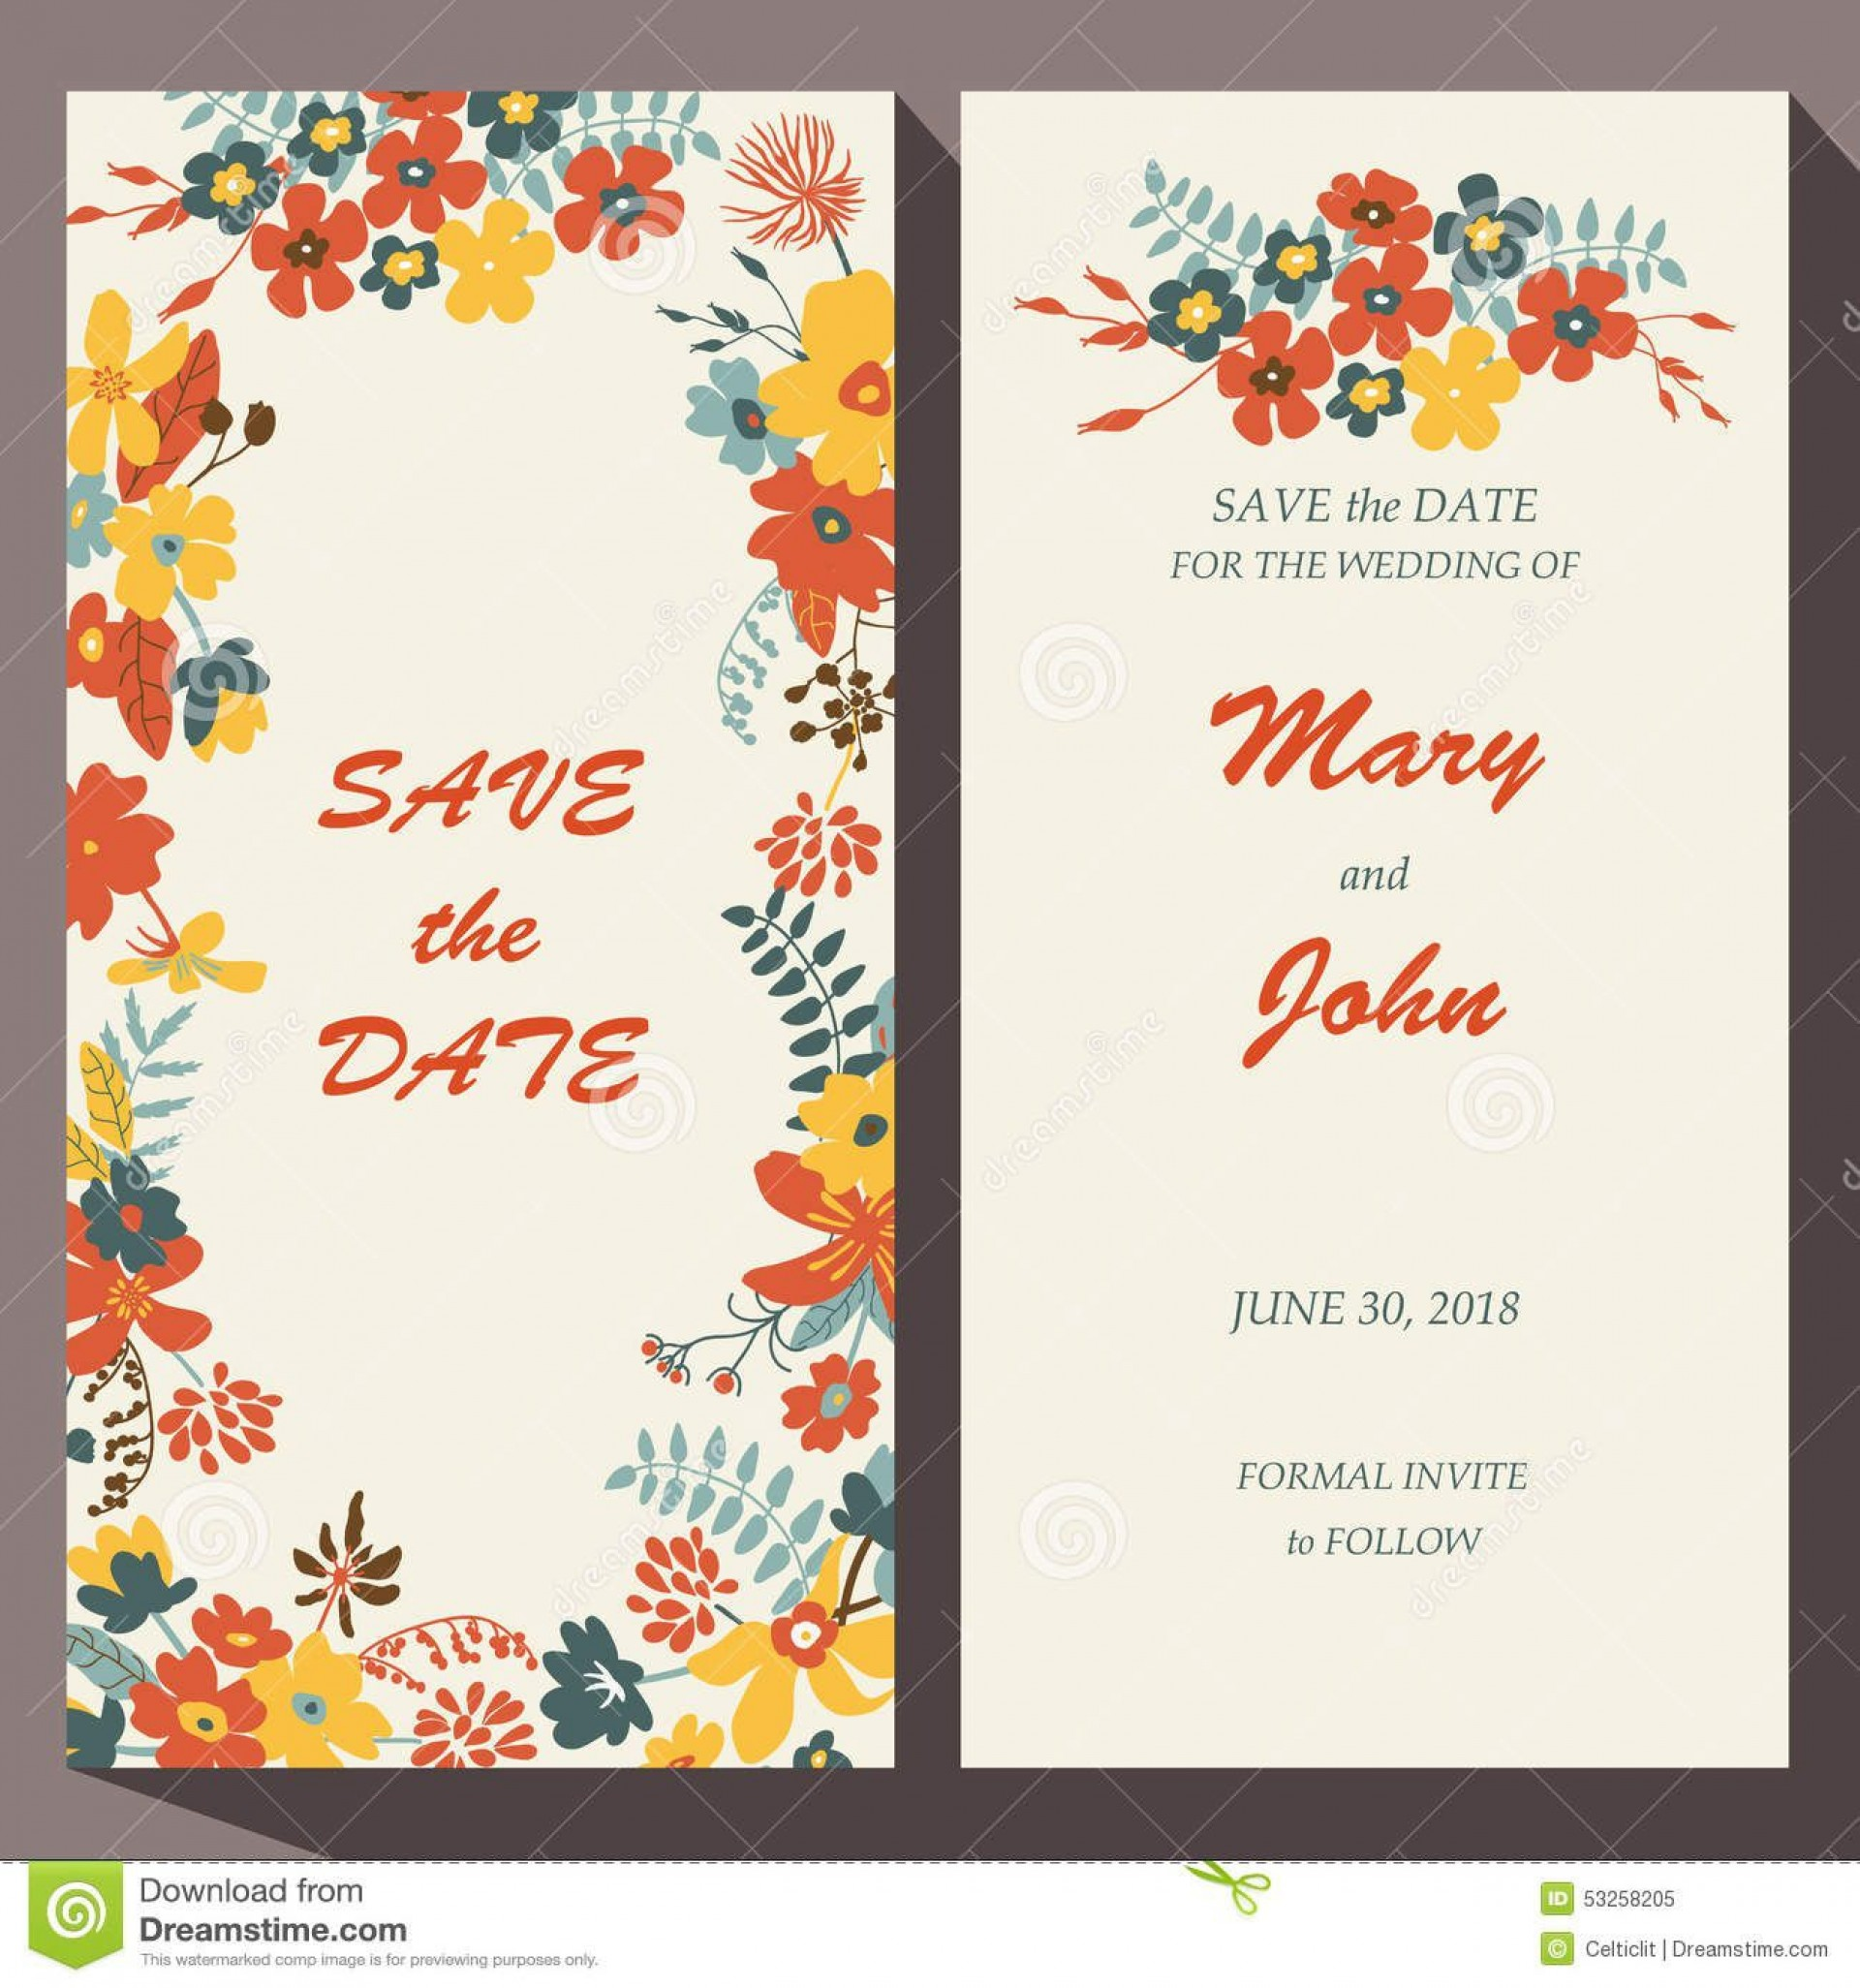 009 Unbelievable Free Save The Date Birthday Postcard Template Concept  Templates1920